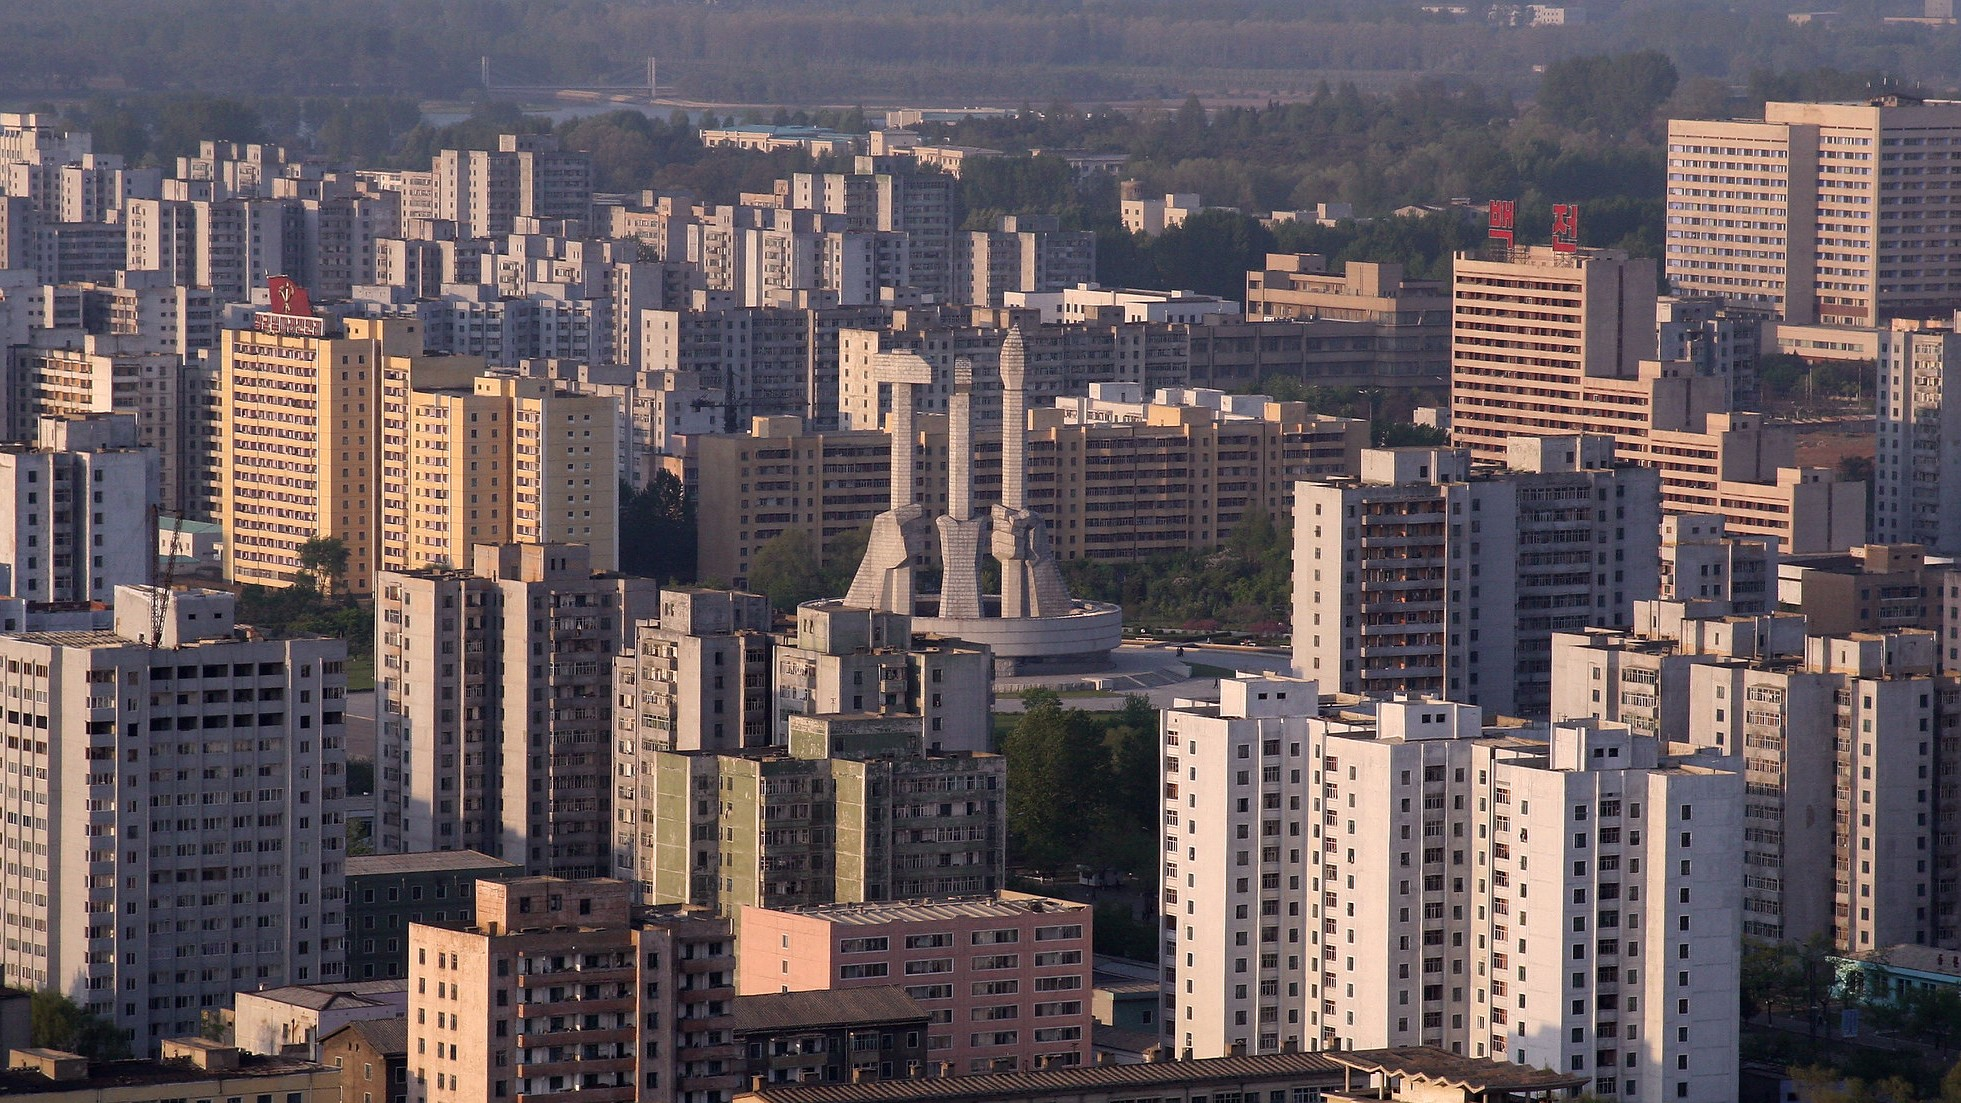 Skyline of Pyongyang, North Korea